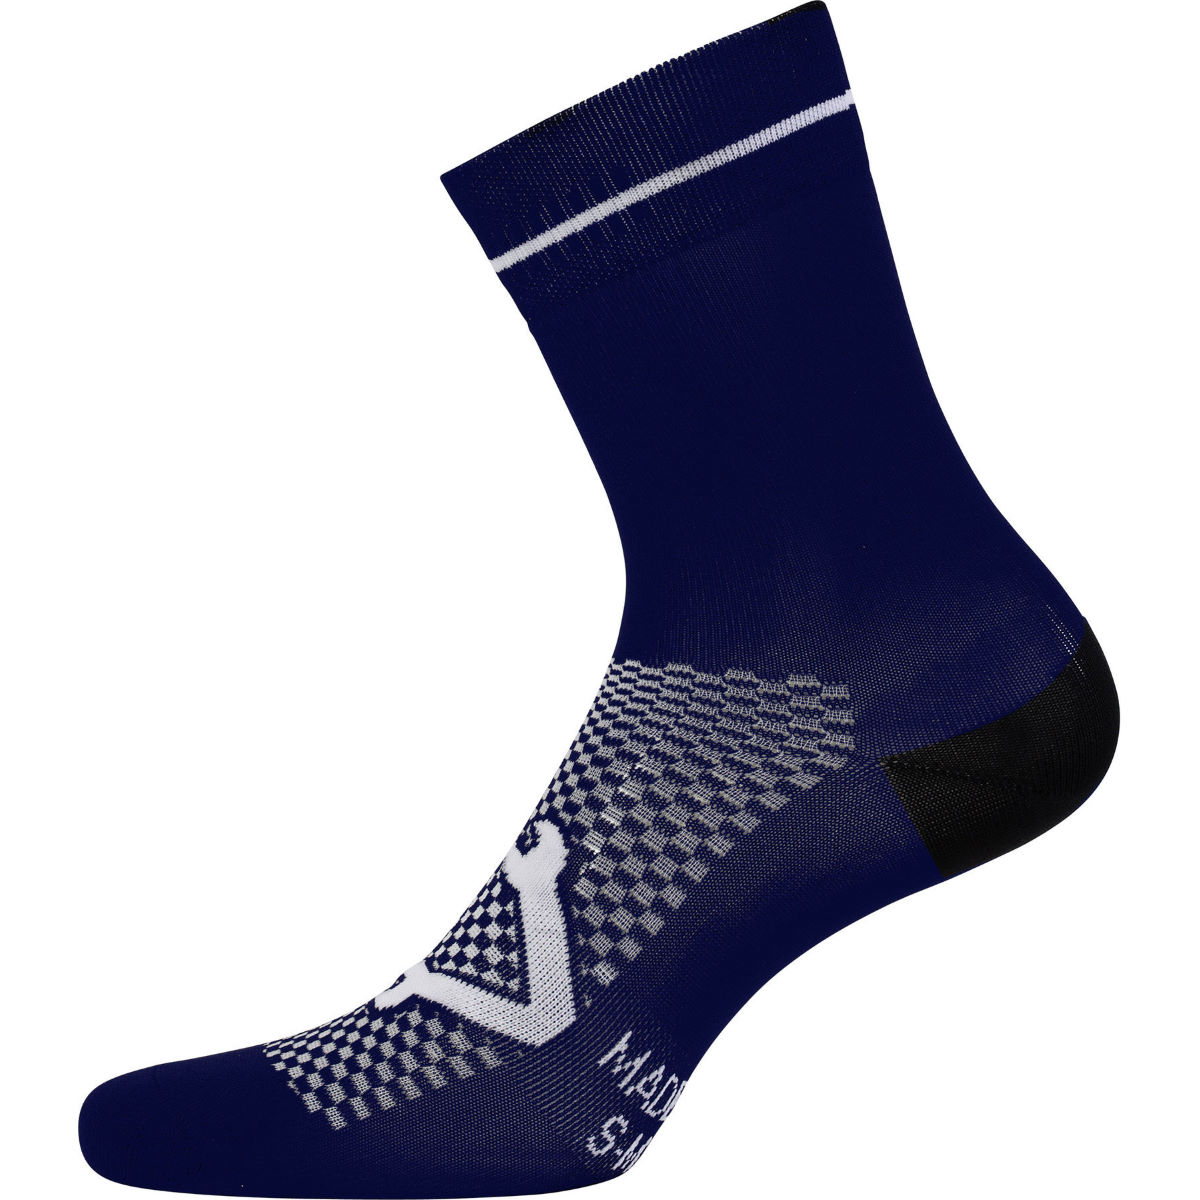 Calcetines Nalini AIS Lampo 2.0 - Calcetines